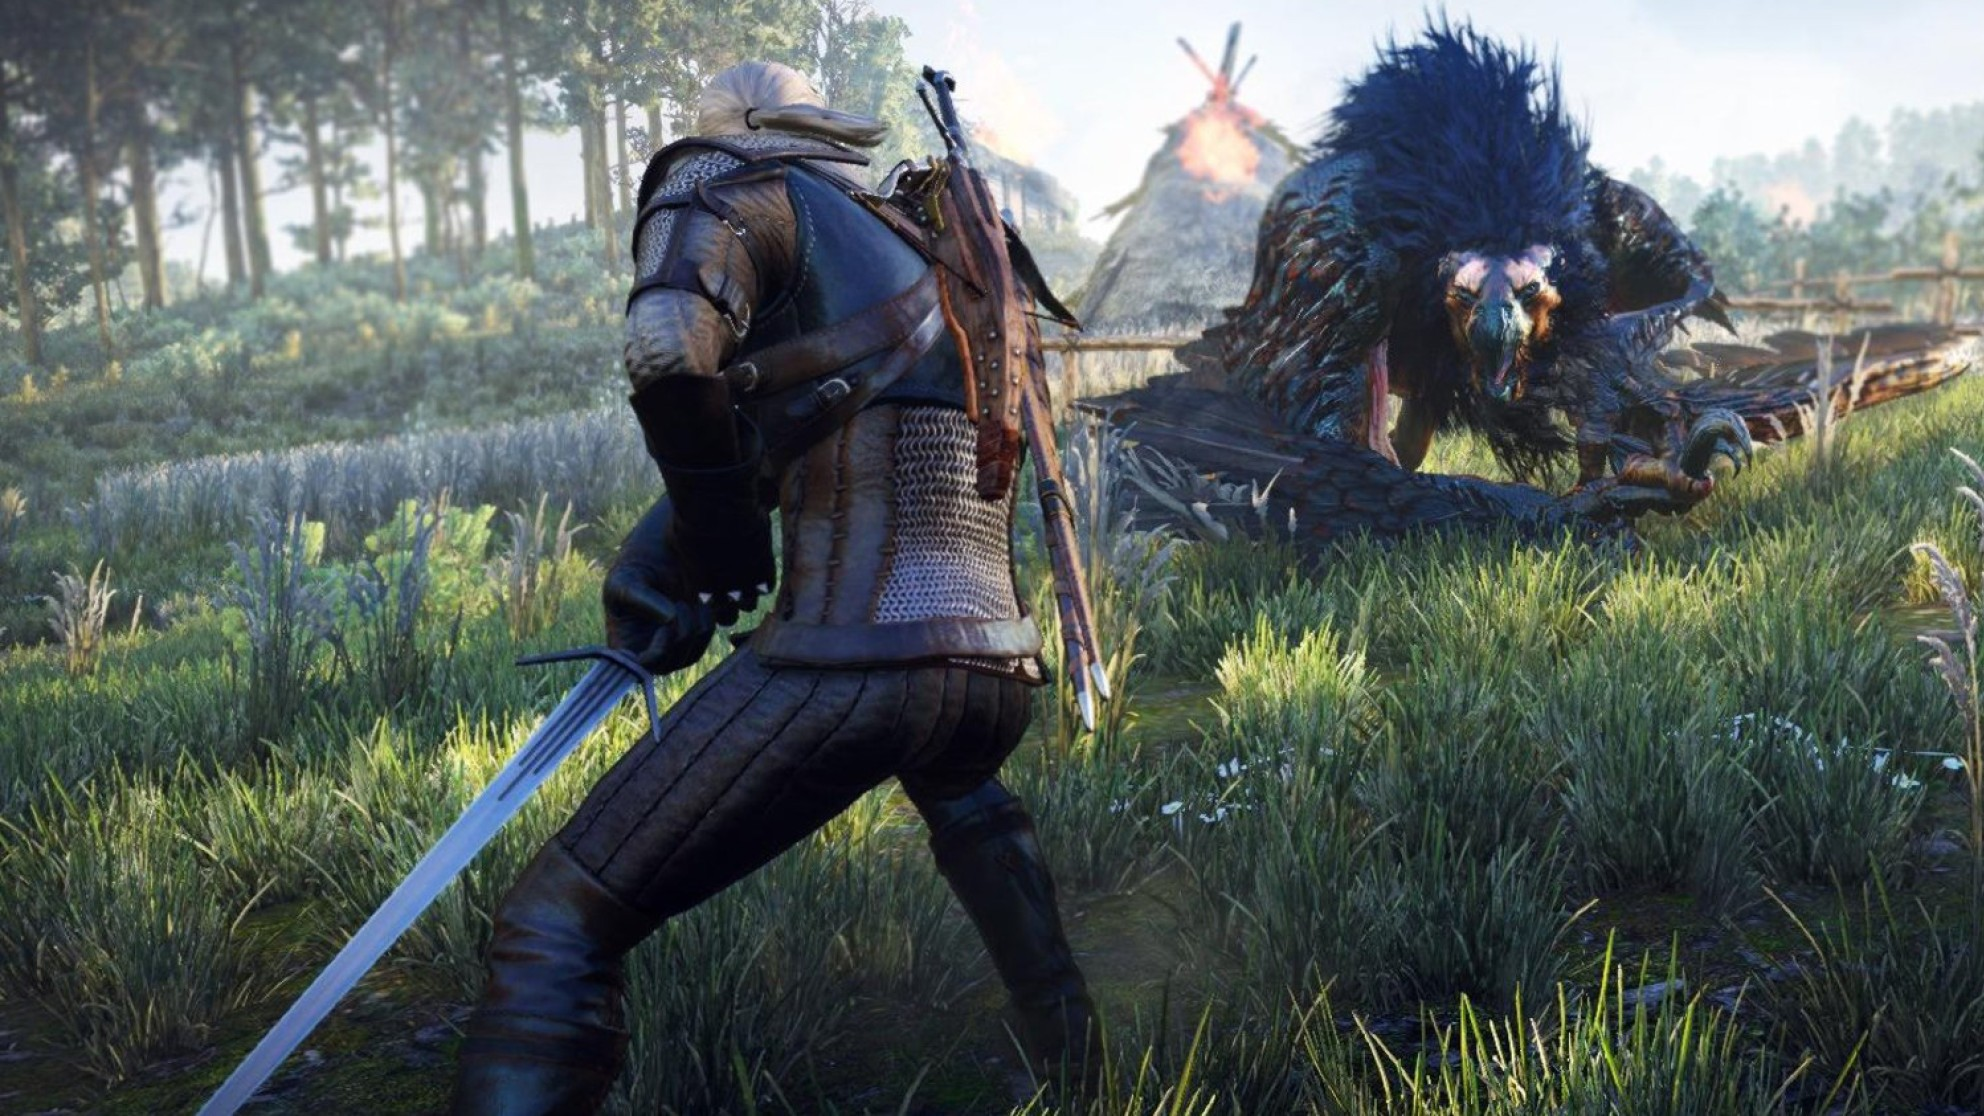 GoG sale: Get The Witcher 3: Wild Hunt GOY edition for less than $10